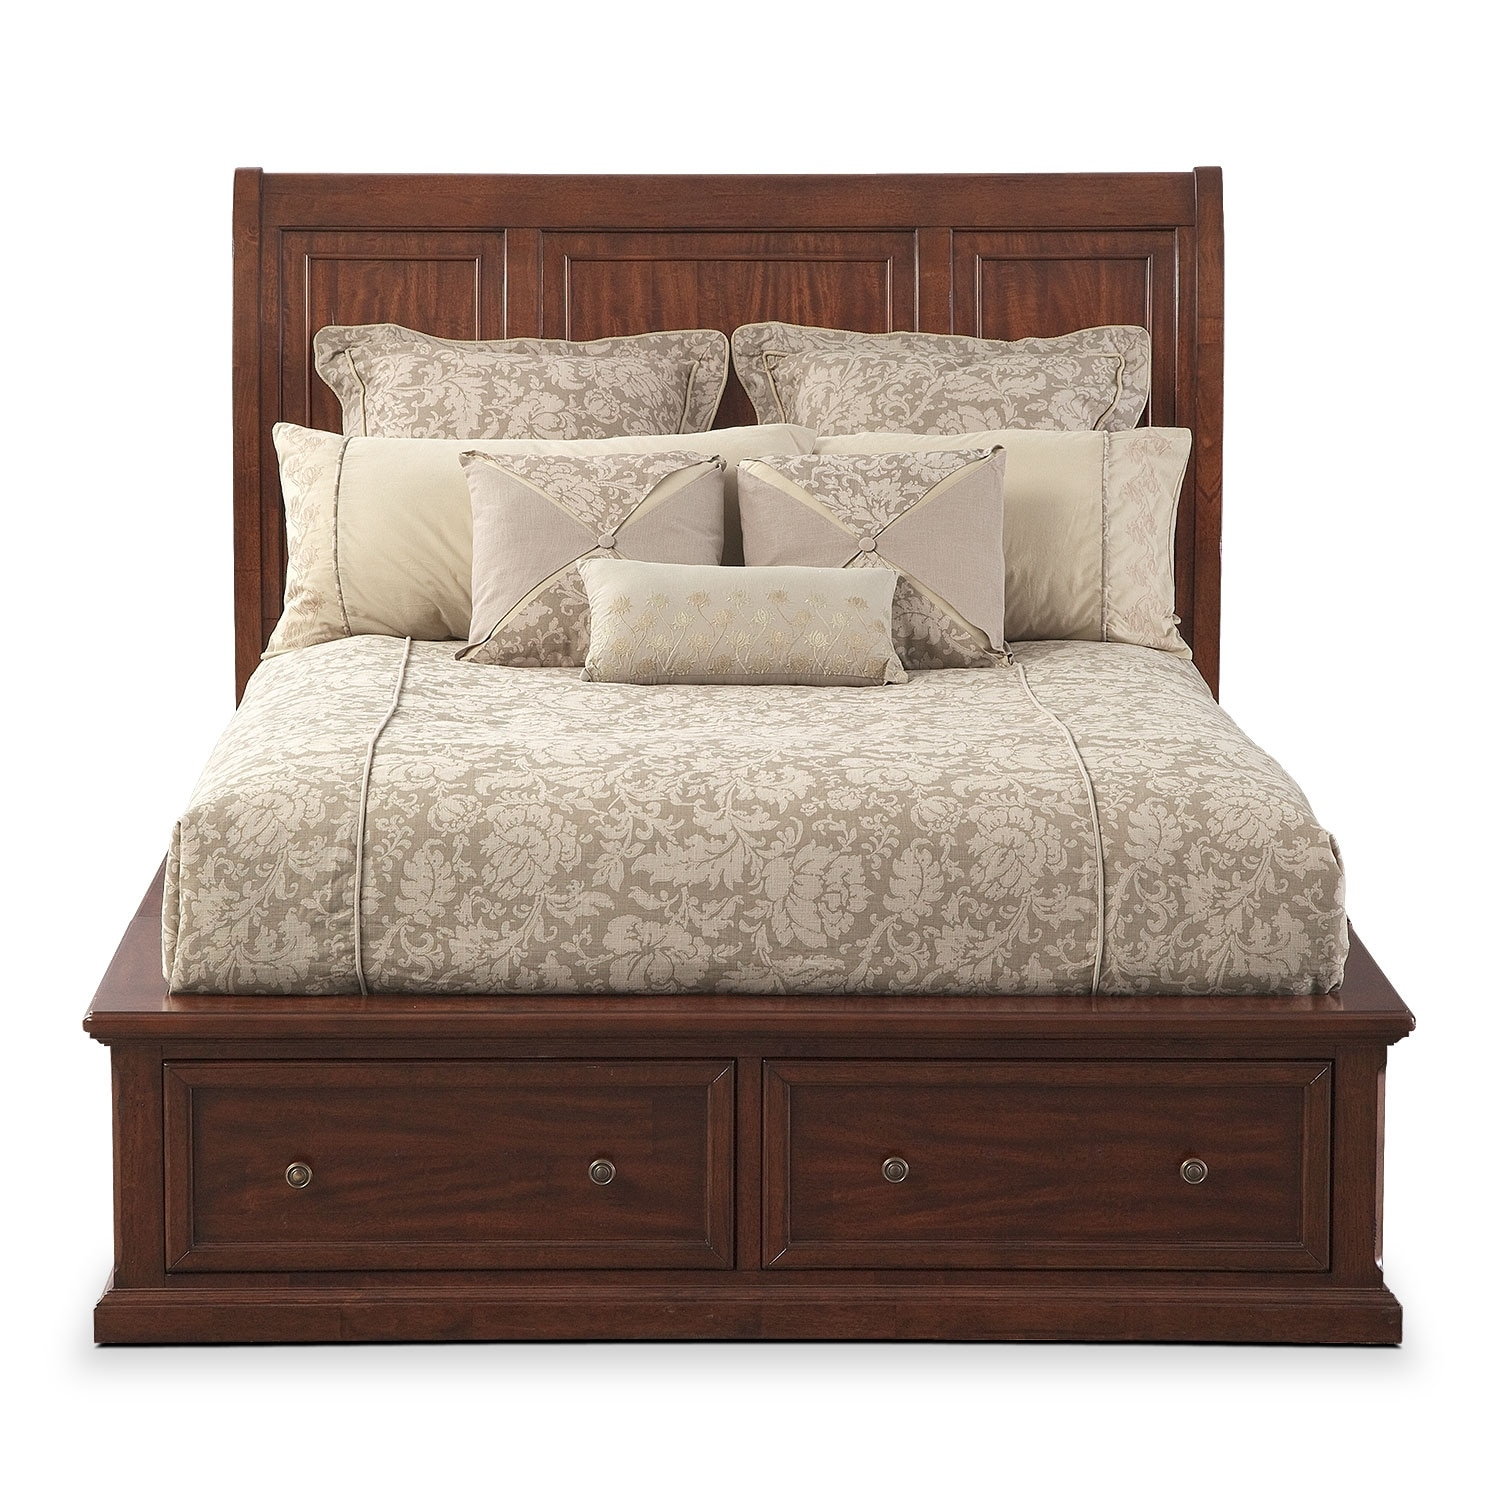 Hanover Storage Bed Value City Furniture And Mattresses